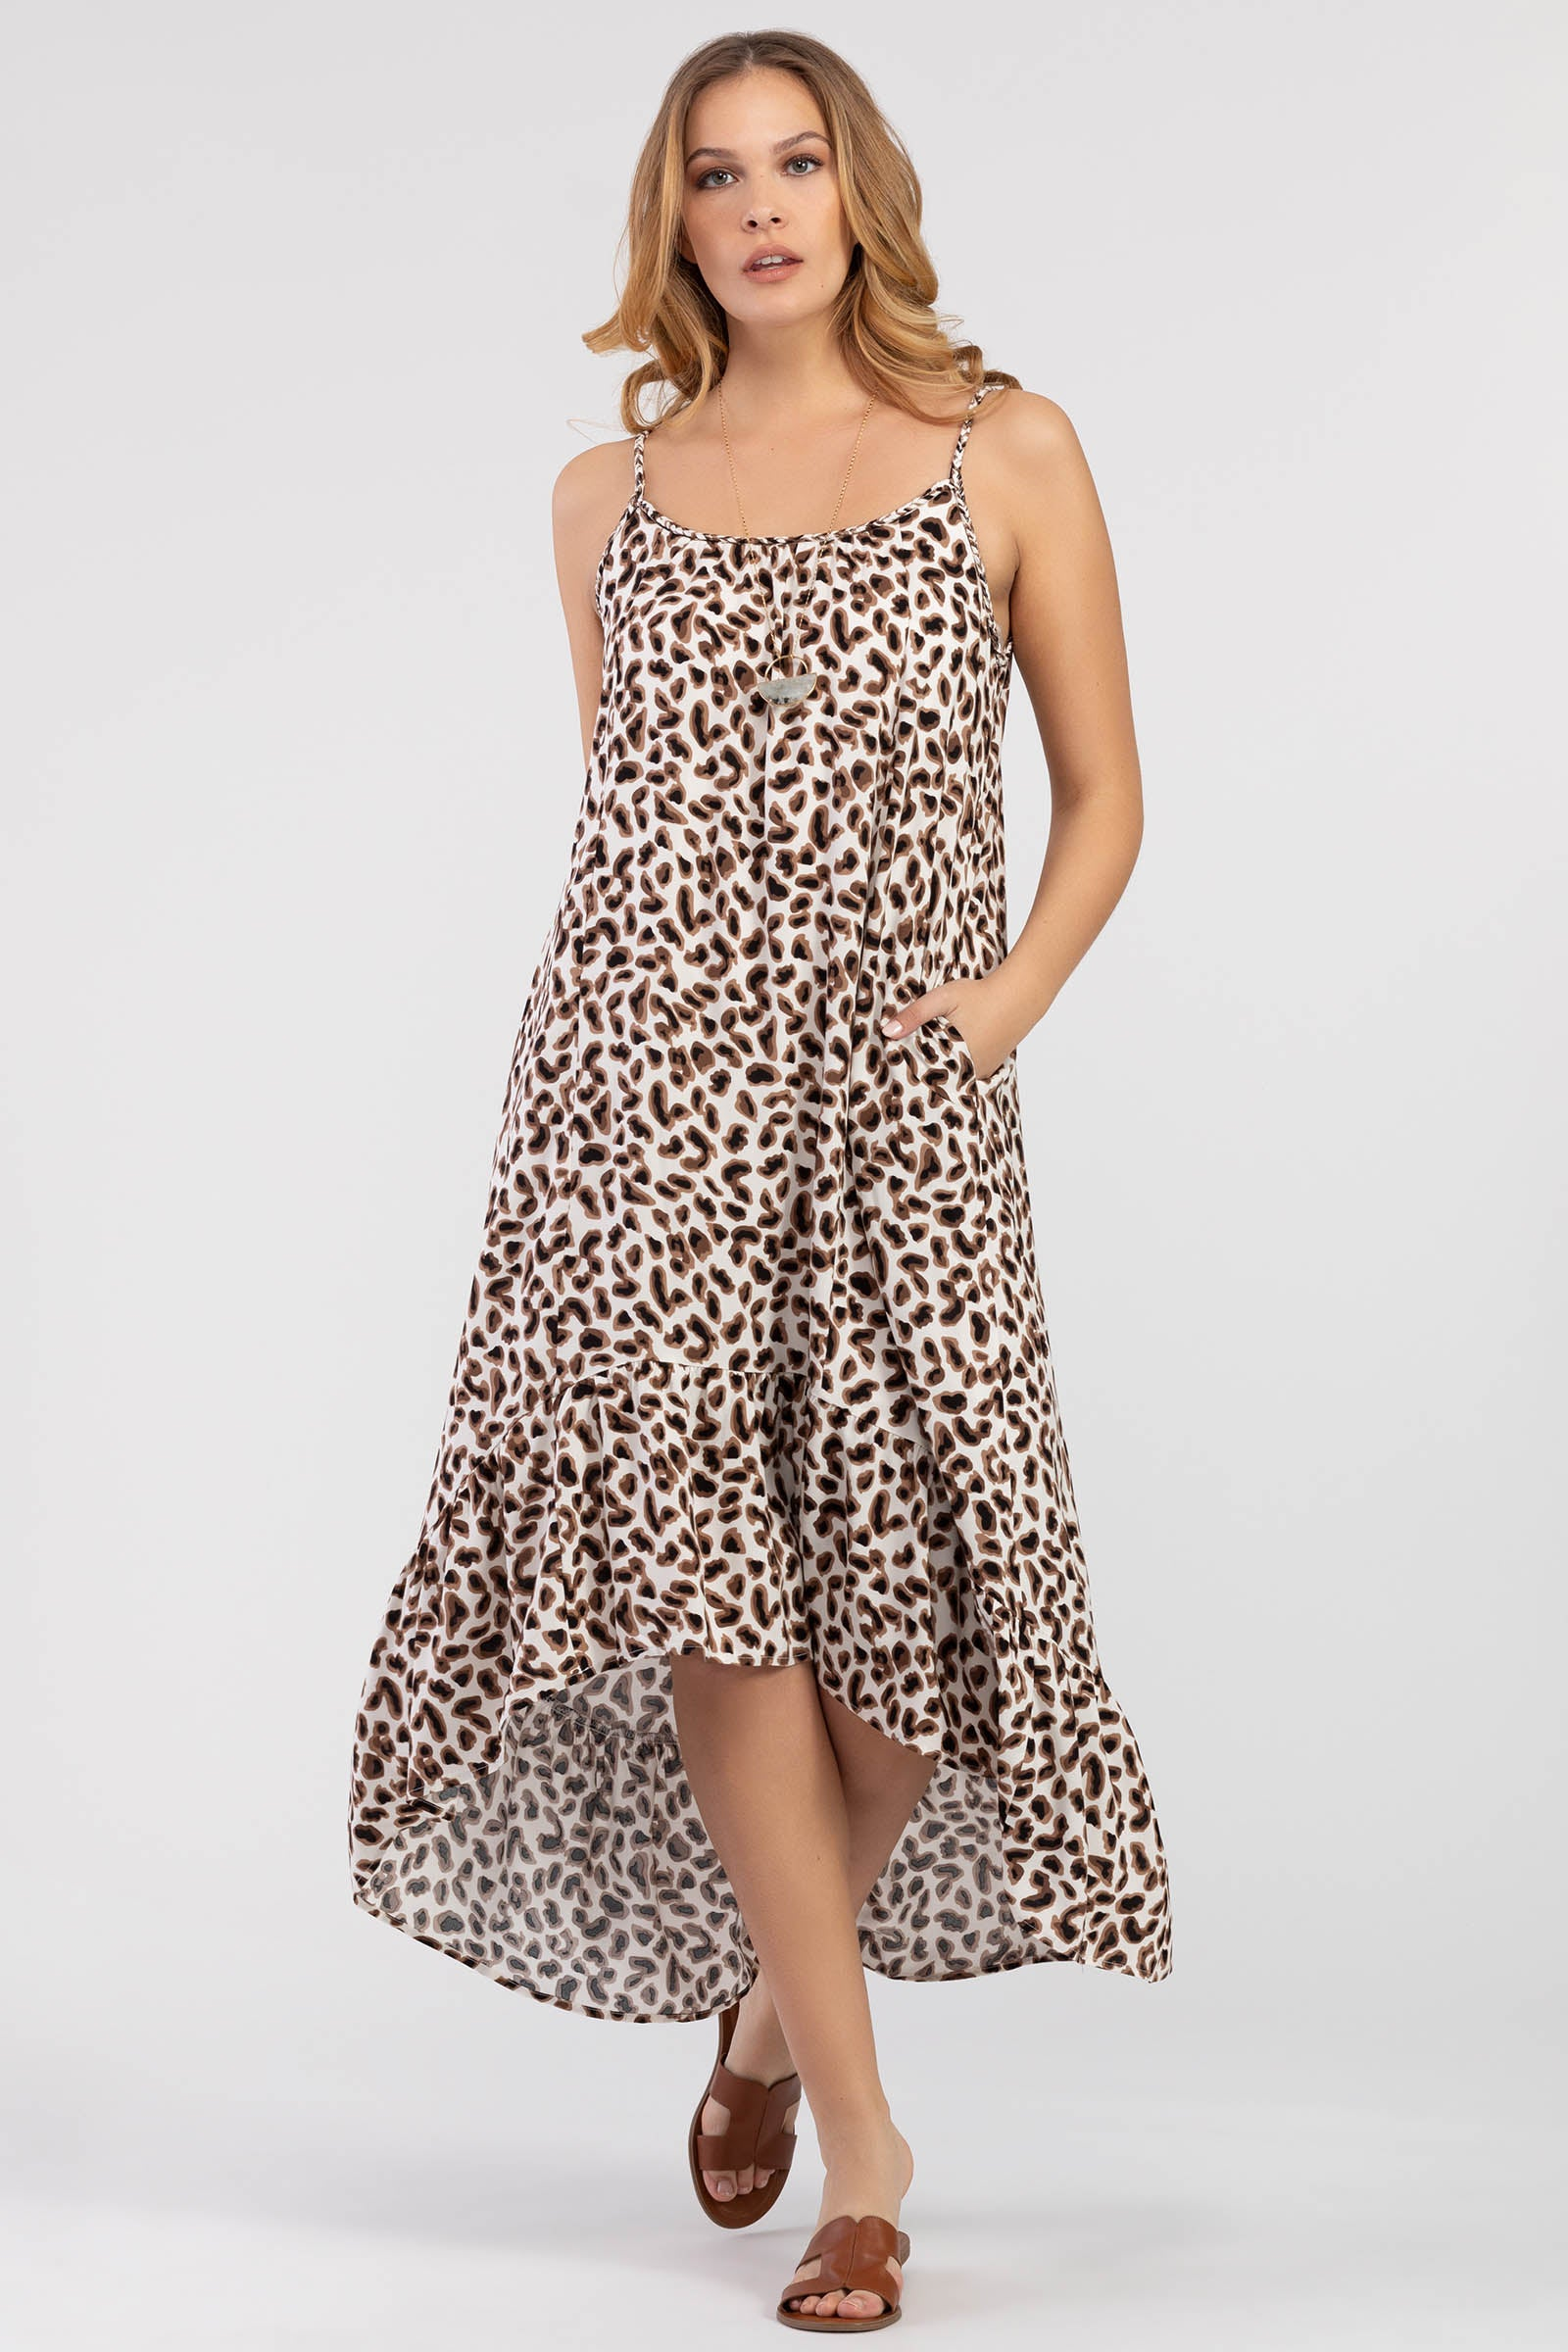 Tribal Leopard Print Maxi Dress